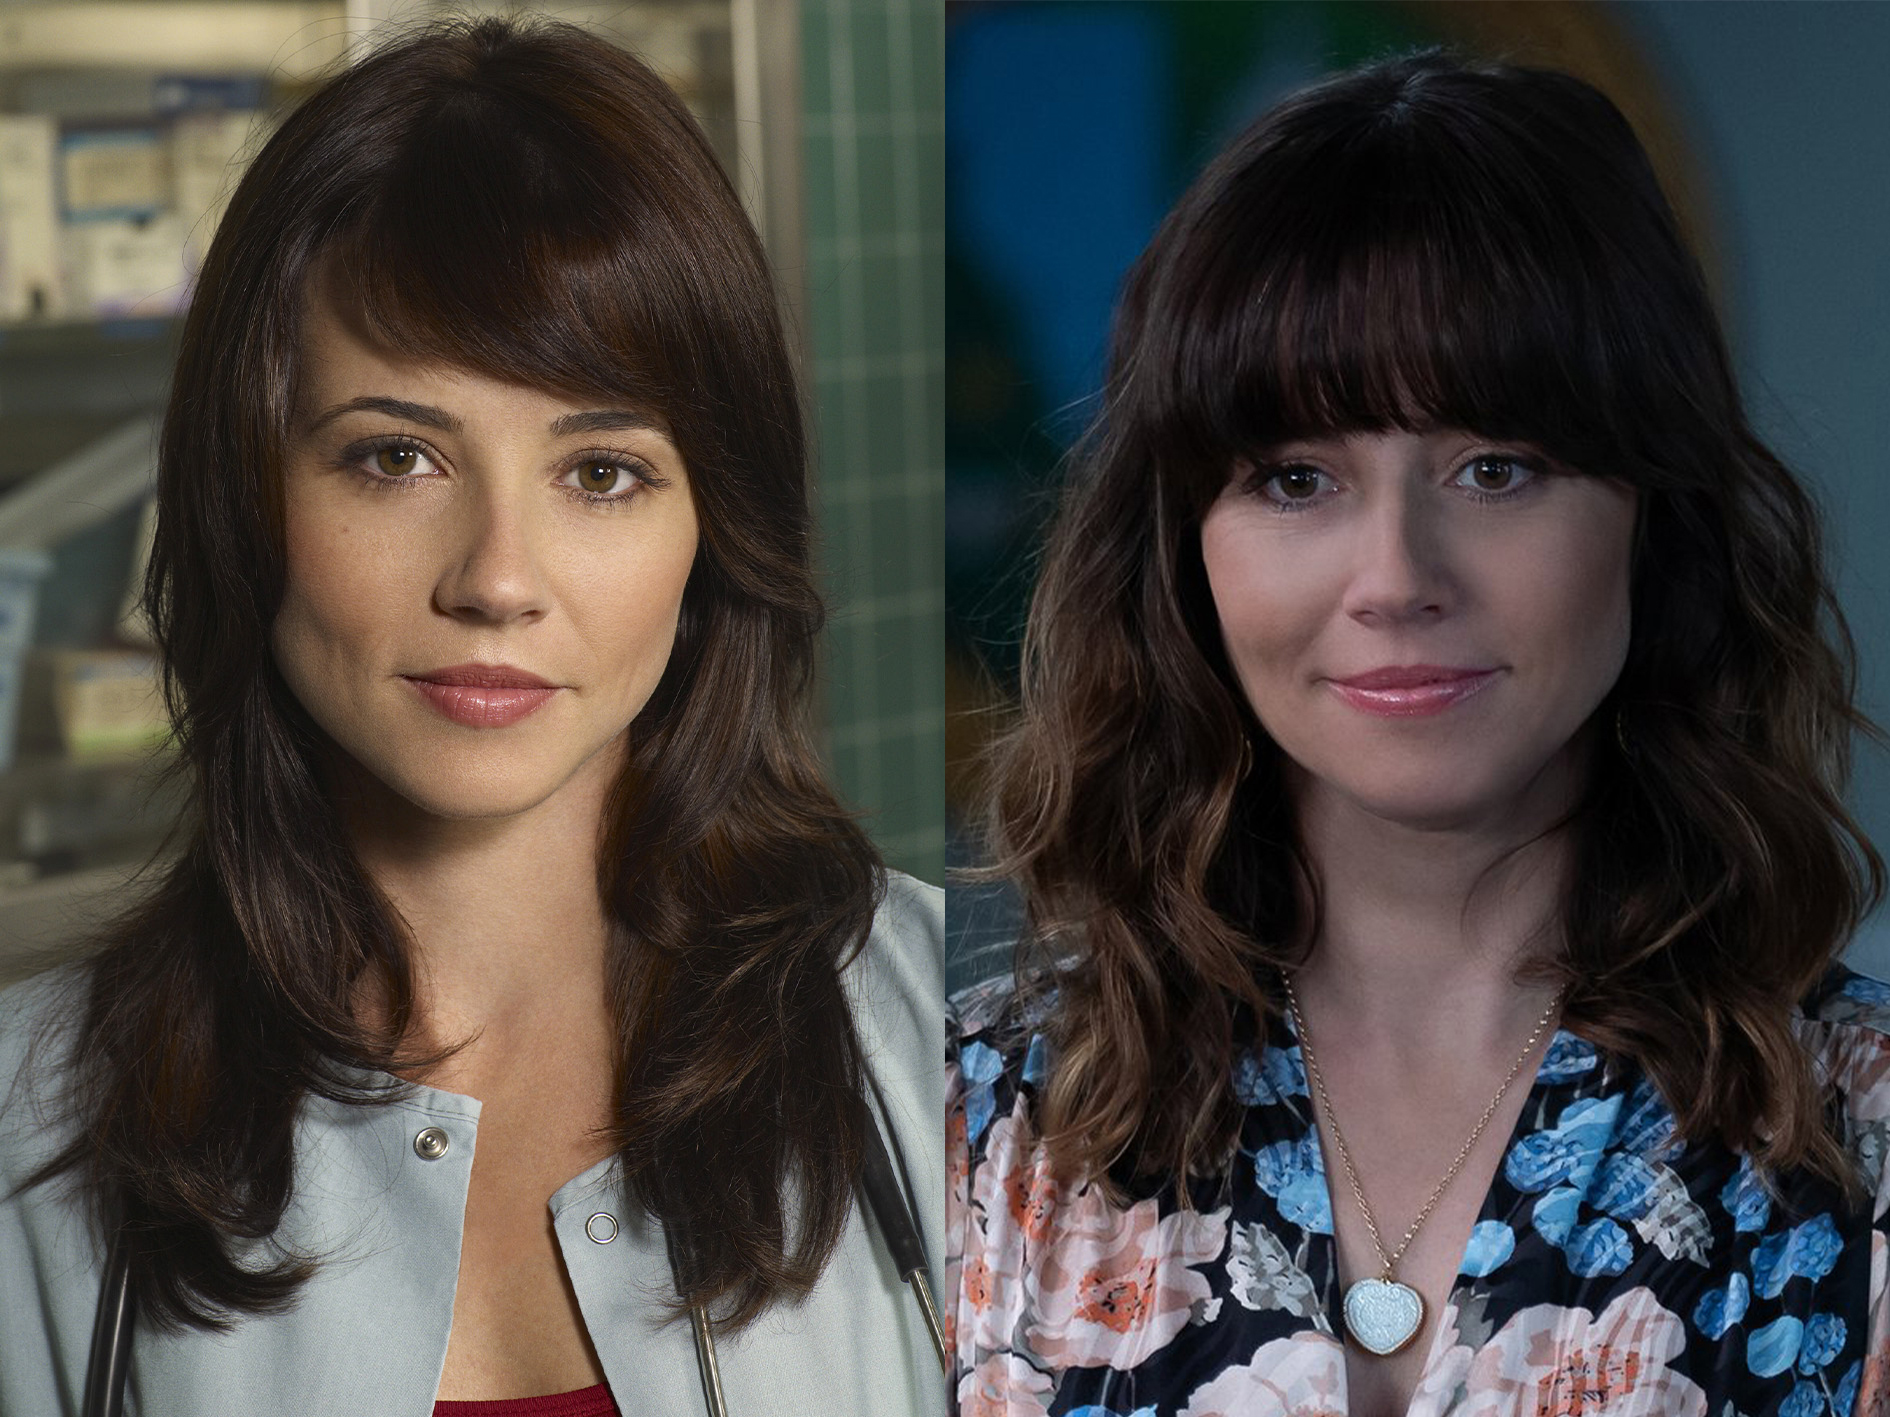 Linda Cardellini ER Where Are The Cast Of ER Now?